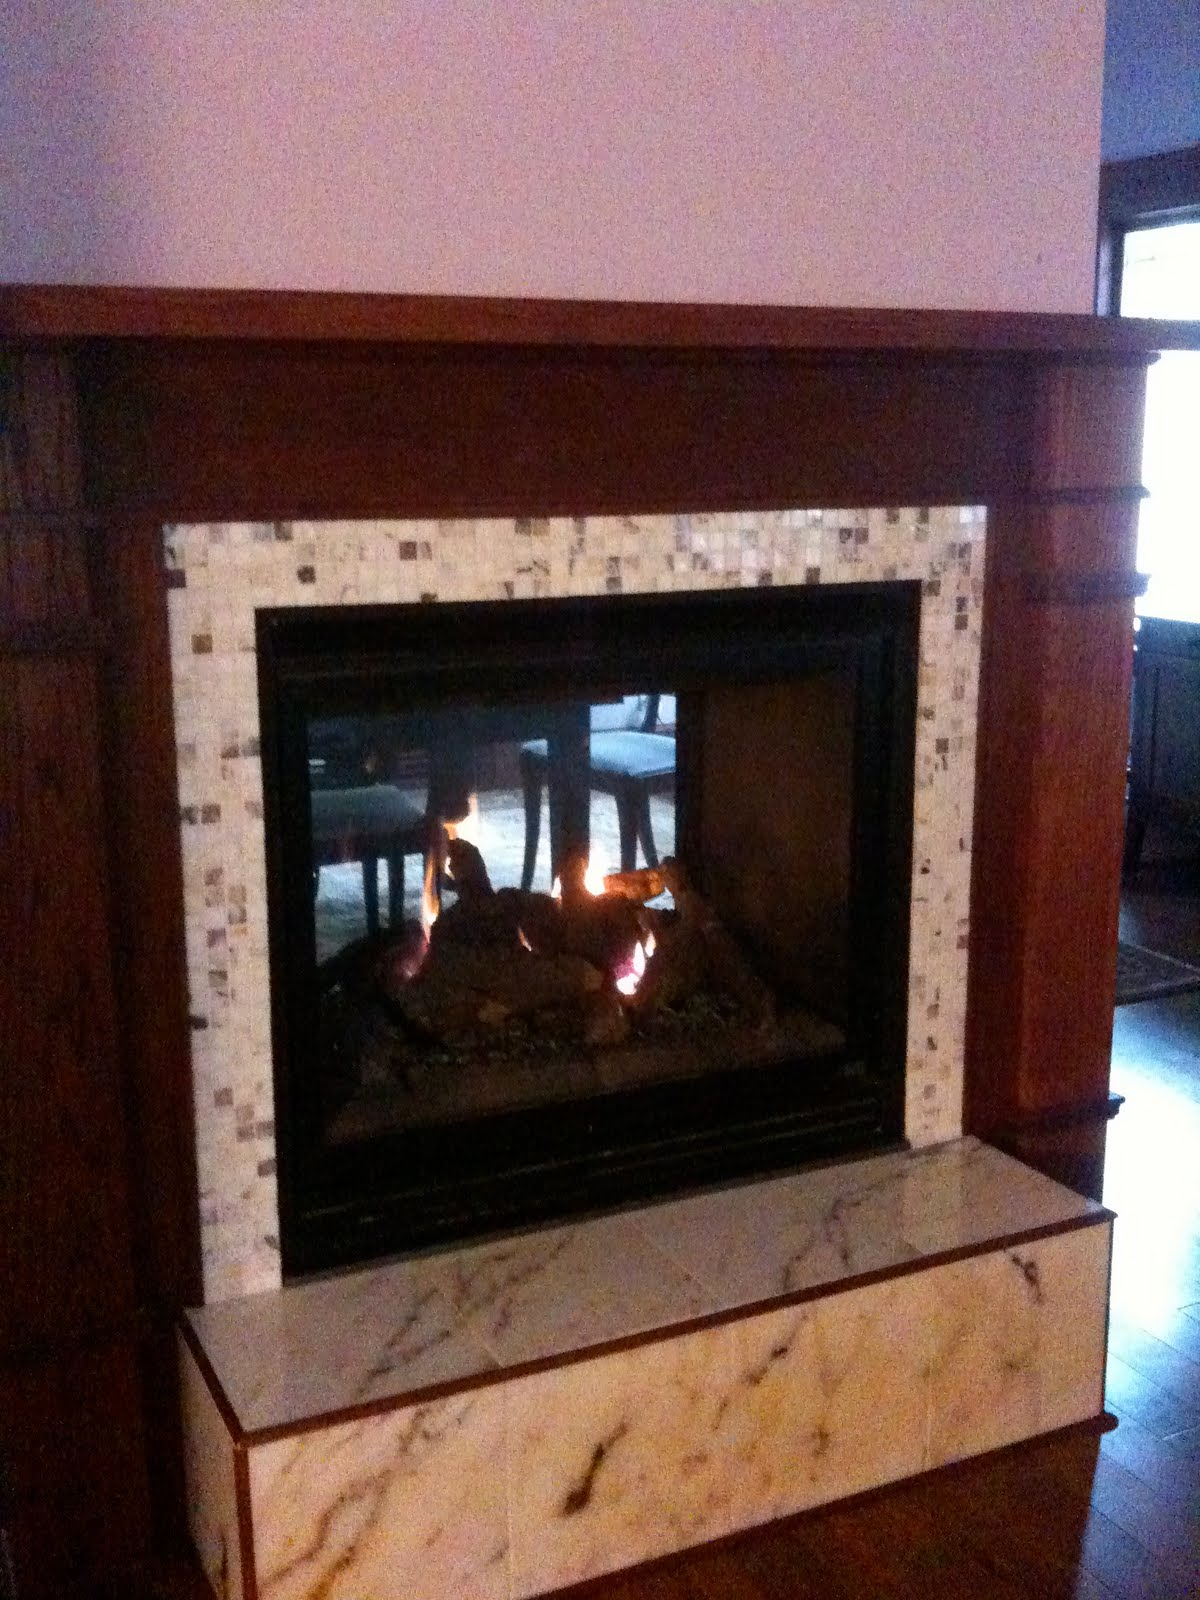 Adventures in Newfield: Fireplace, rainy day, football ...